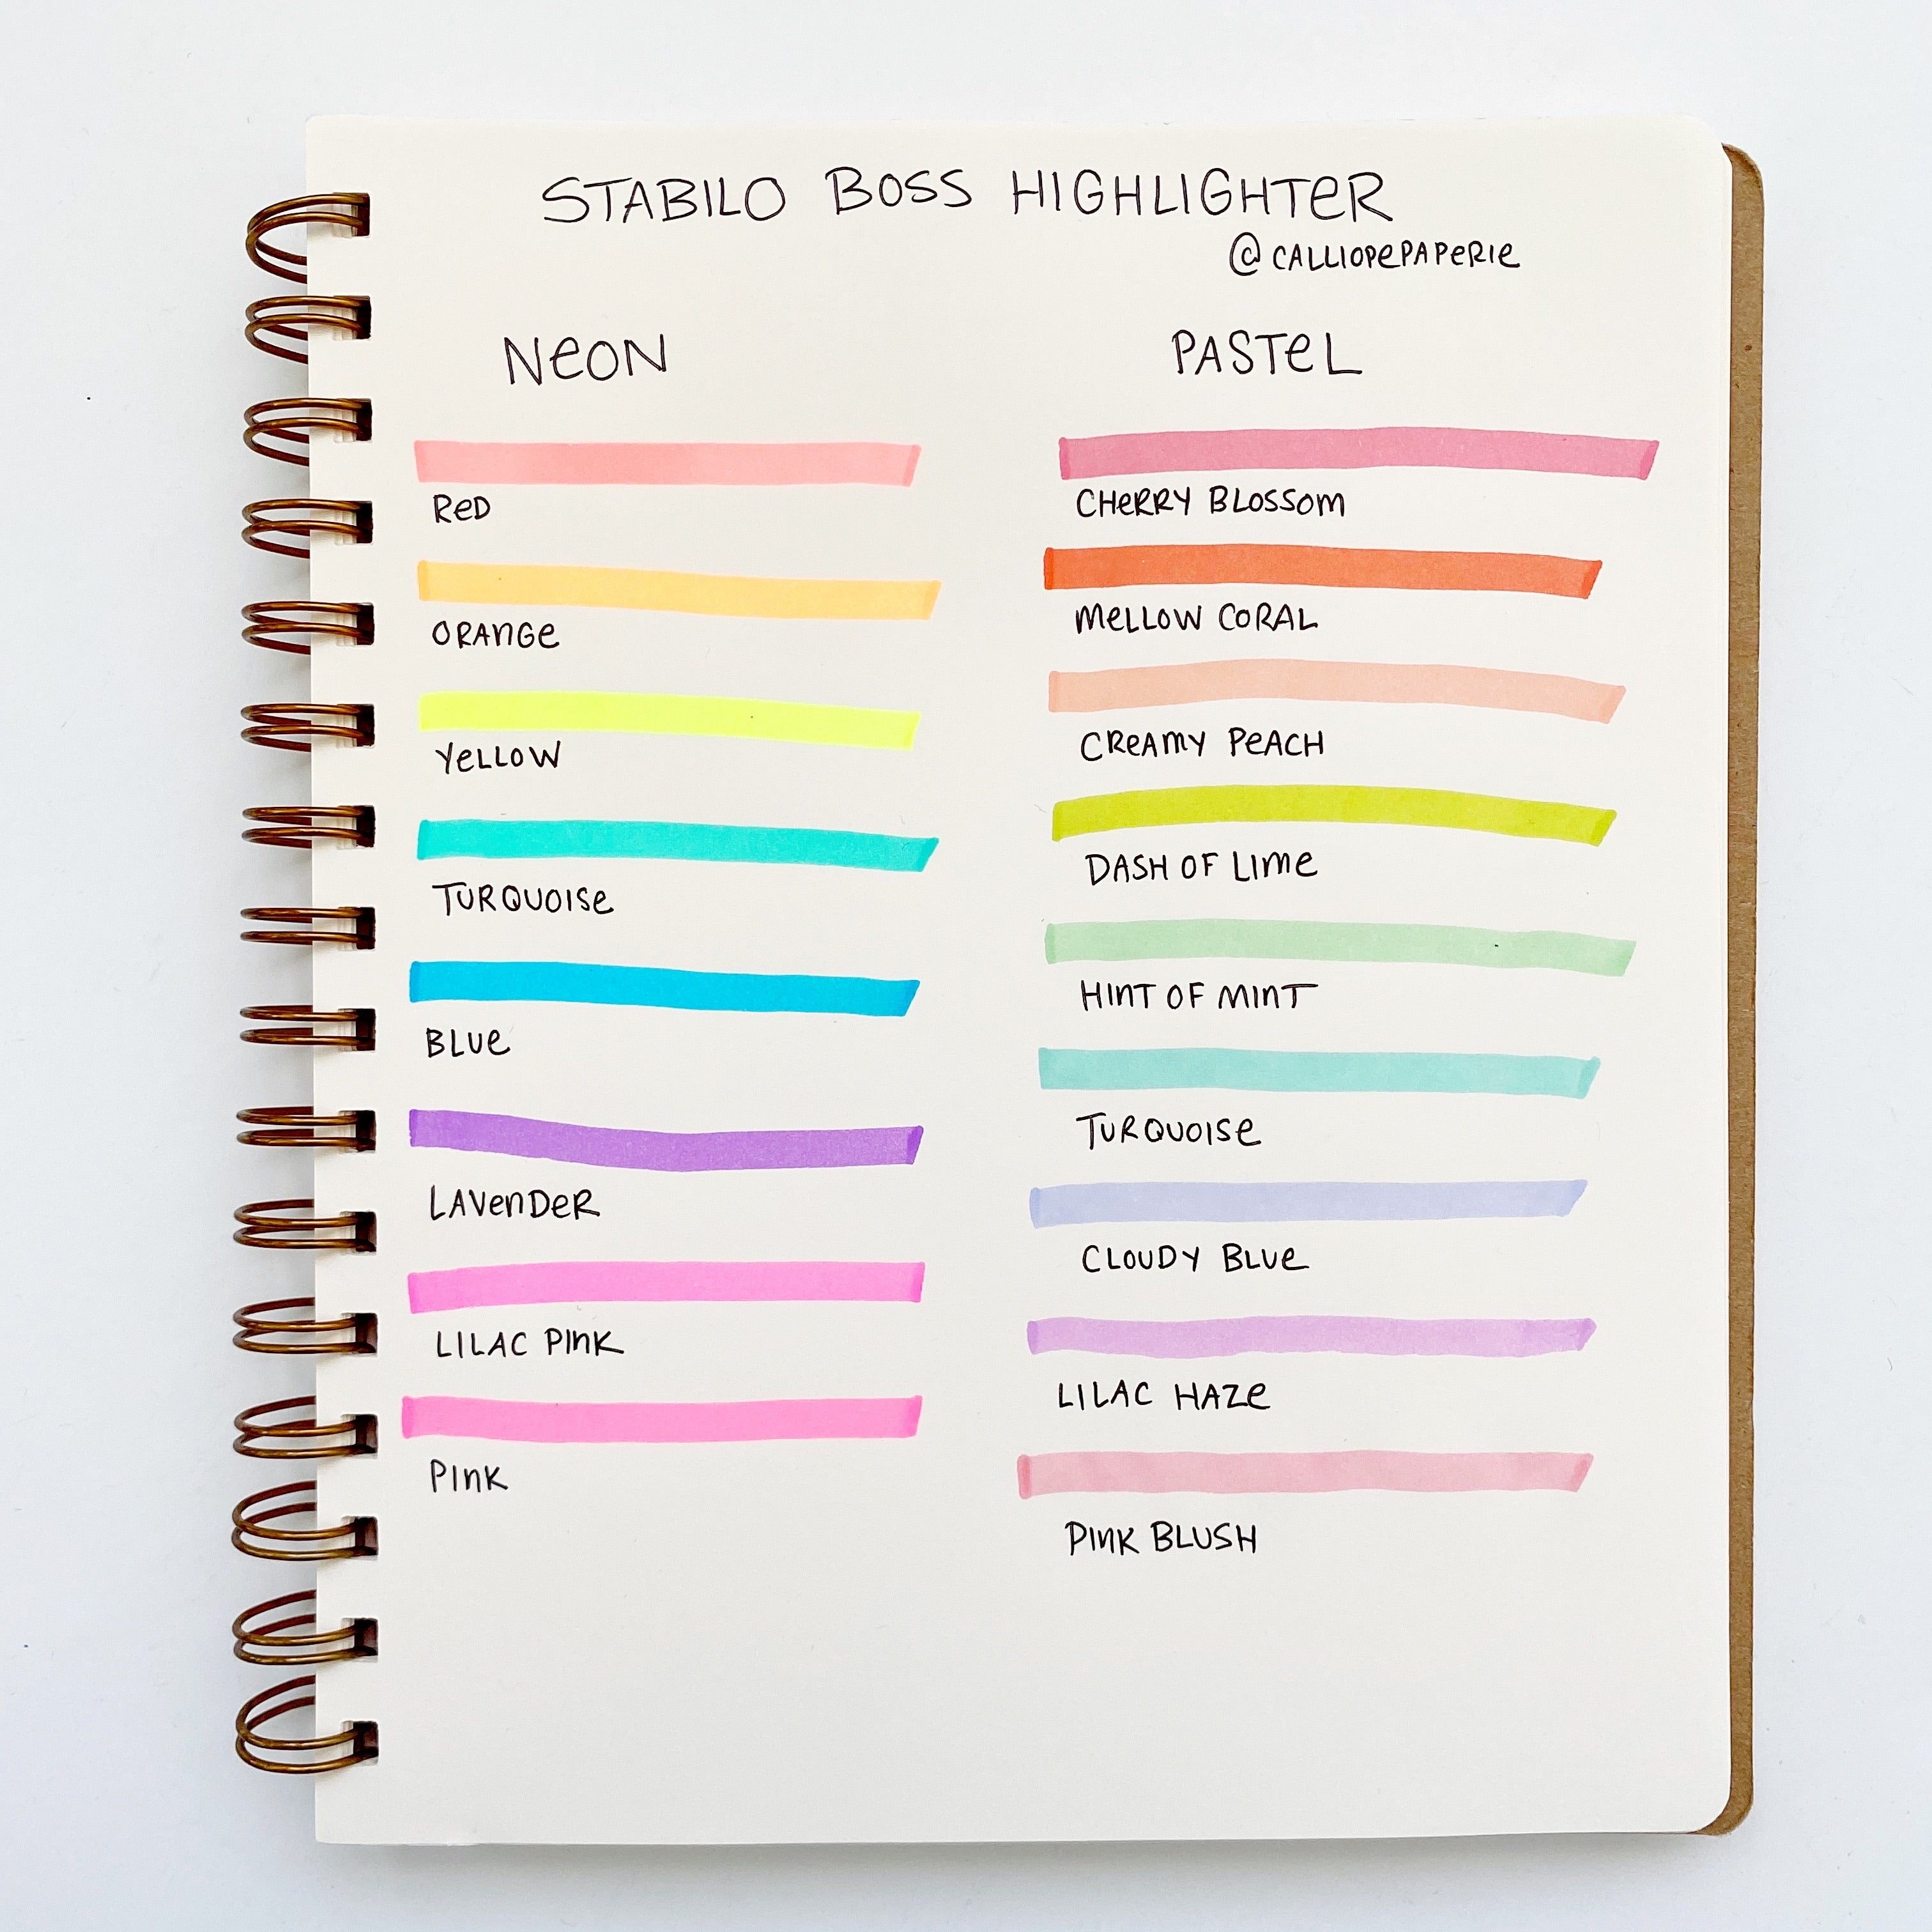 Stabilo BOSS Highlighters - Neon